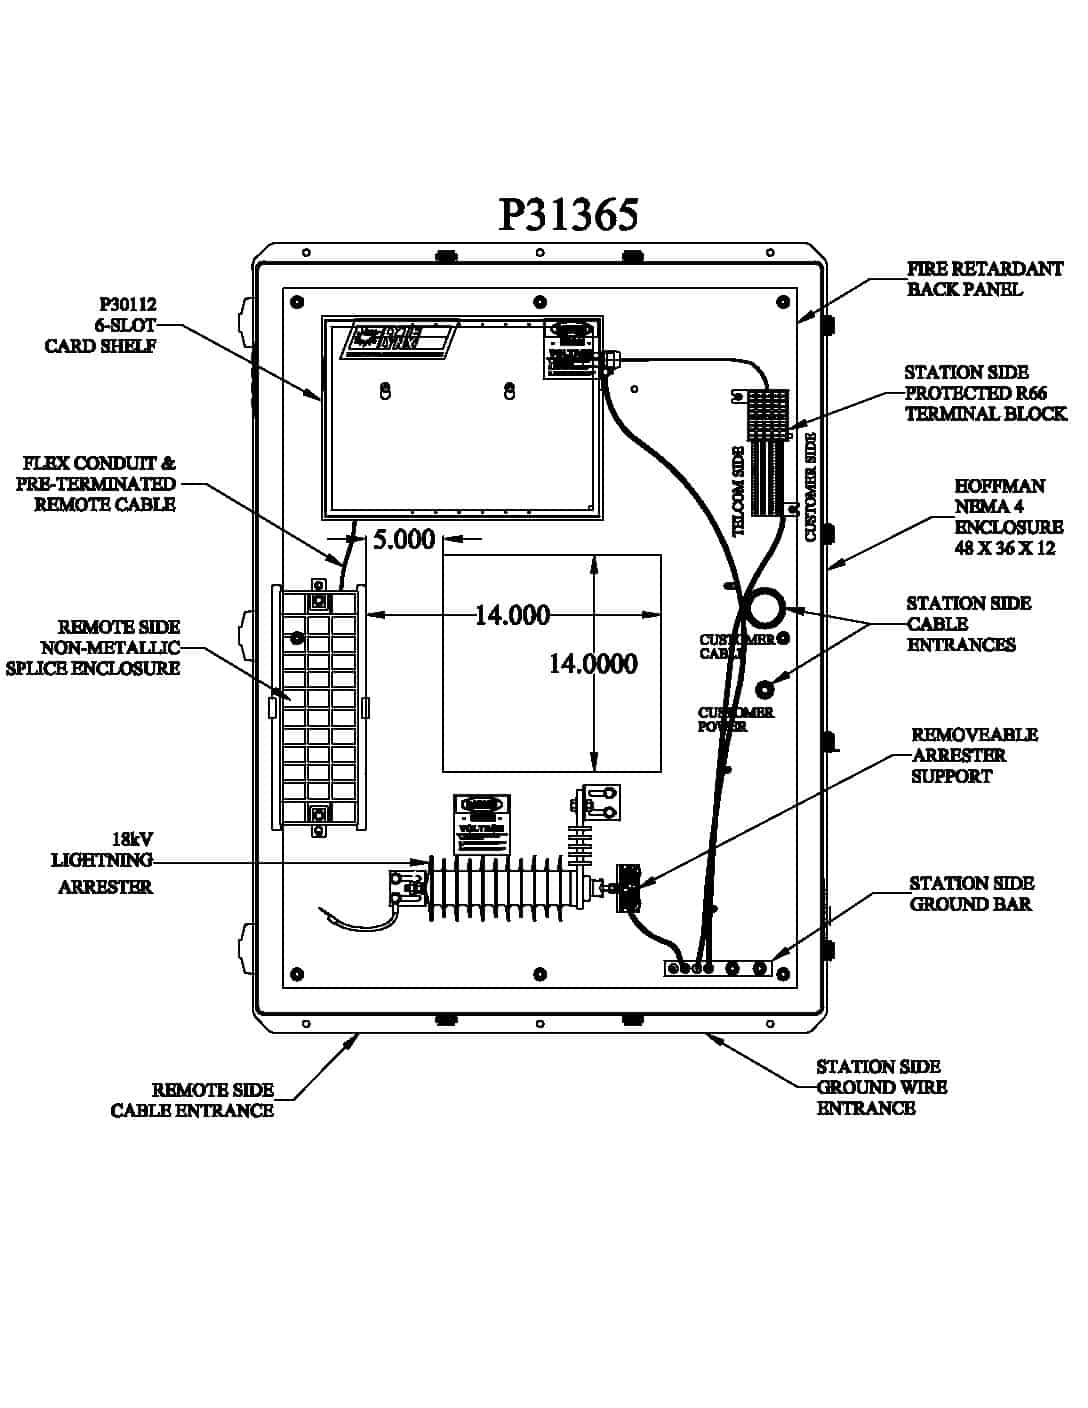 P31365 Turnkey Protection Packages - 6 slot PDF thumbnail